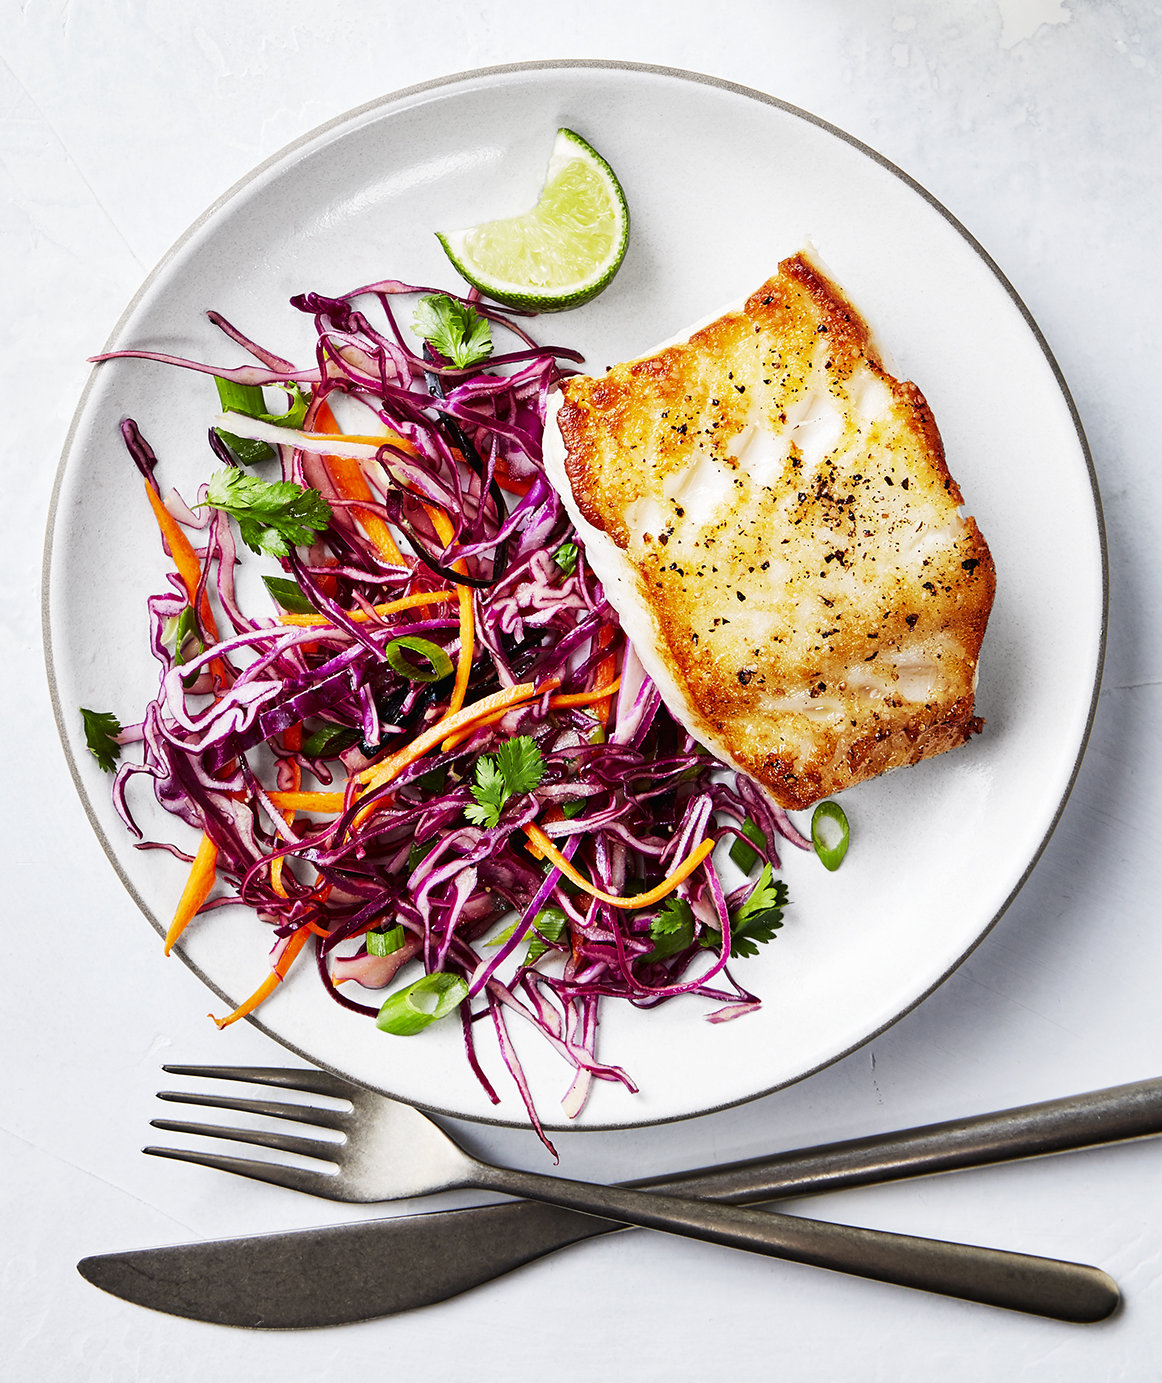 How To Make Pan Seared Fish With a Perfectly Crispy Skin